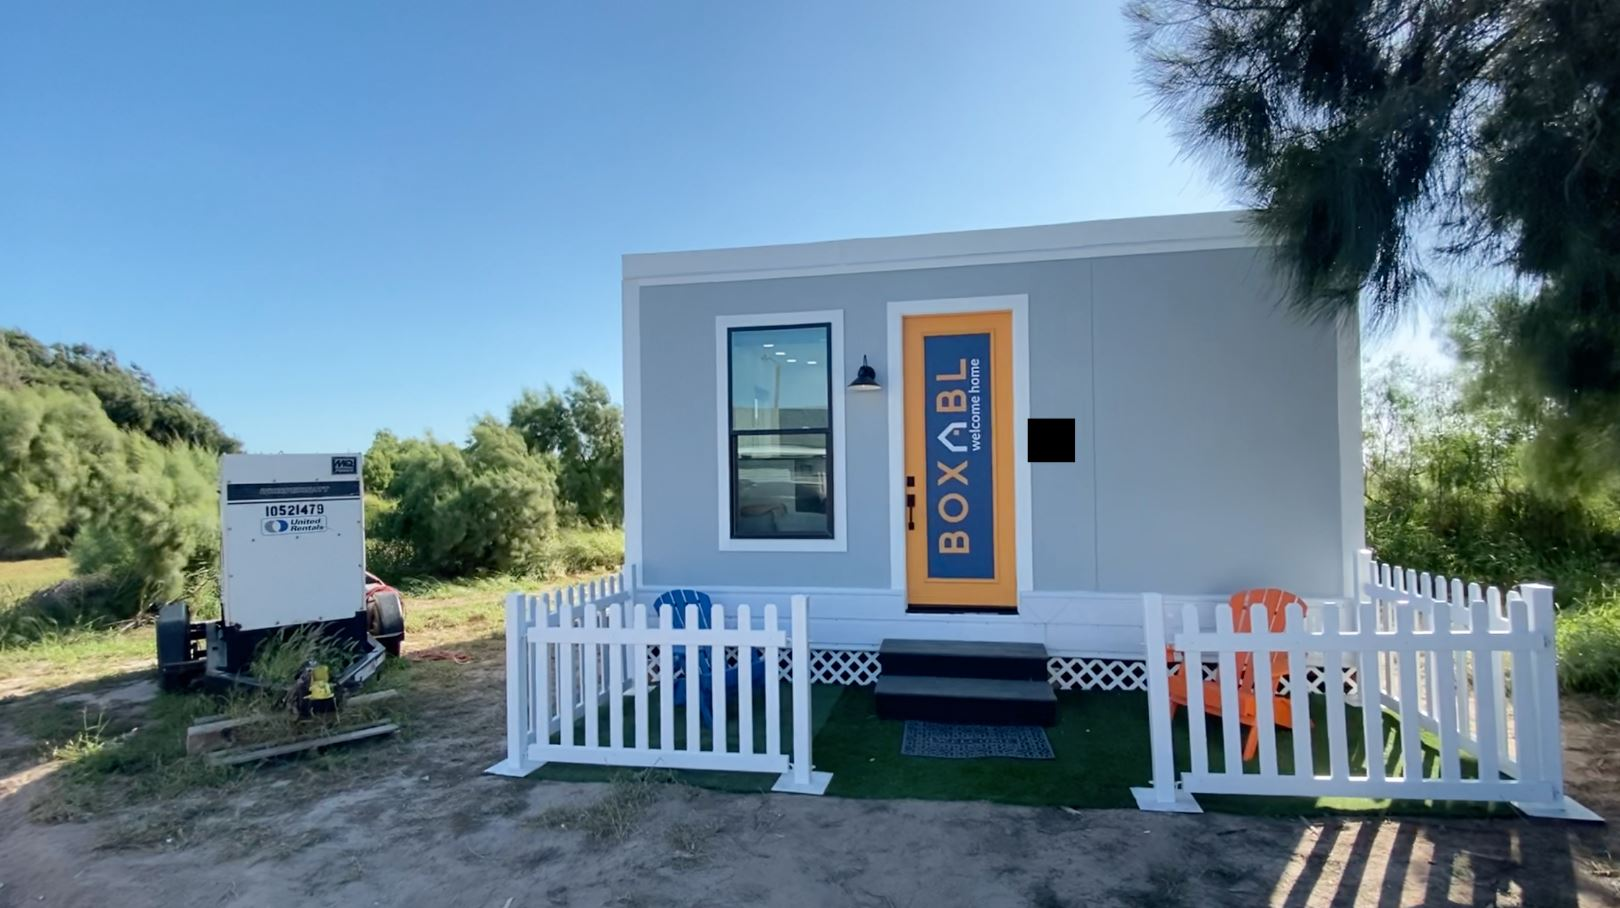 Elon Musk Lives in a Prefab Tiny Home That He Doesn't Even Own, a Boxabl